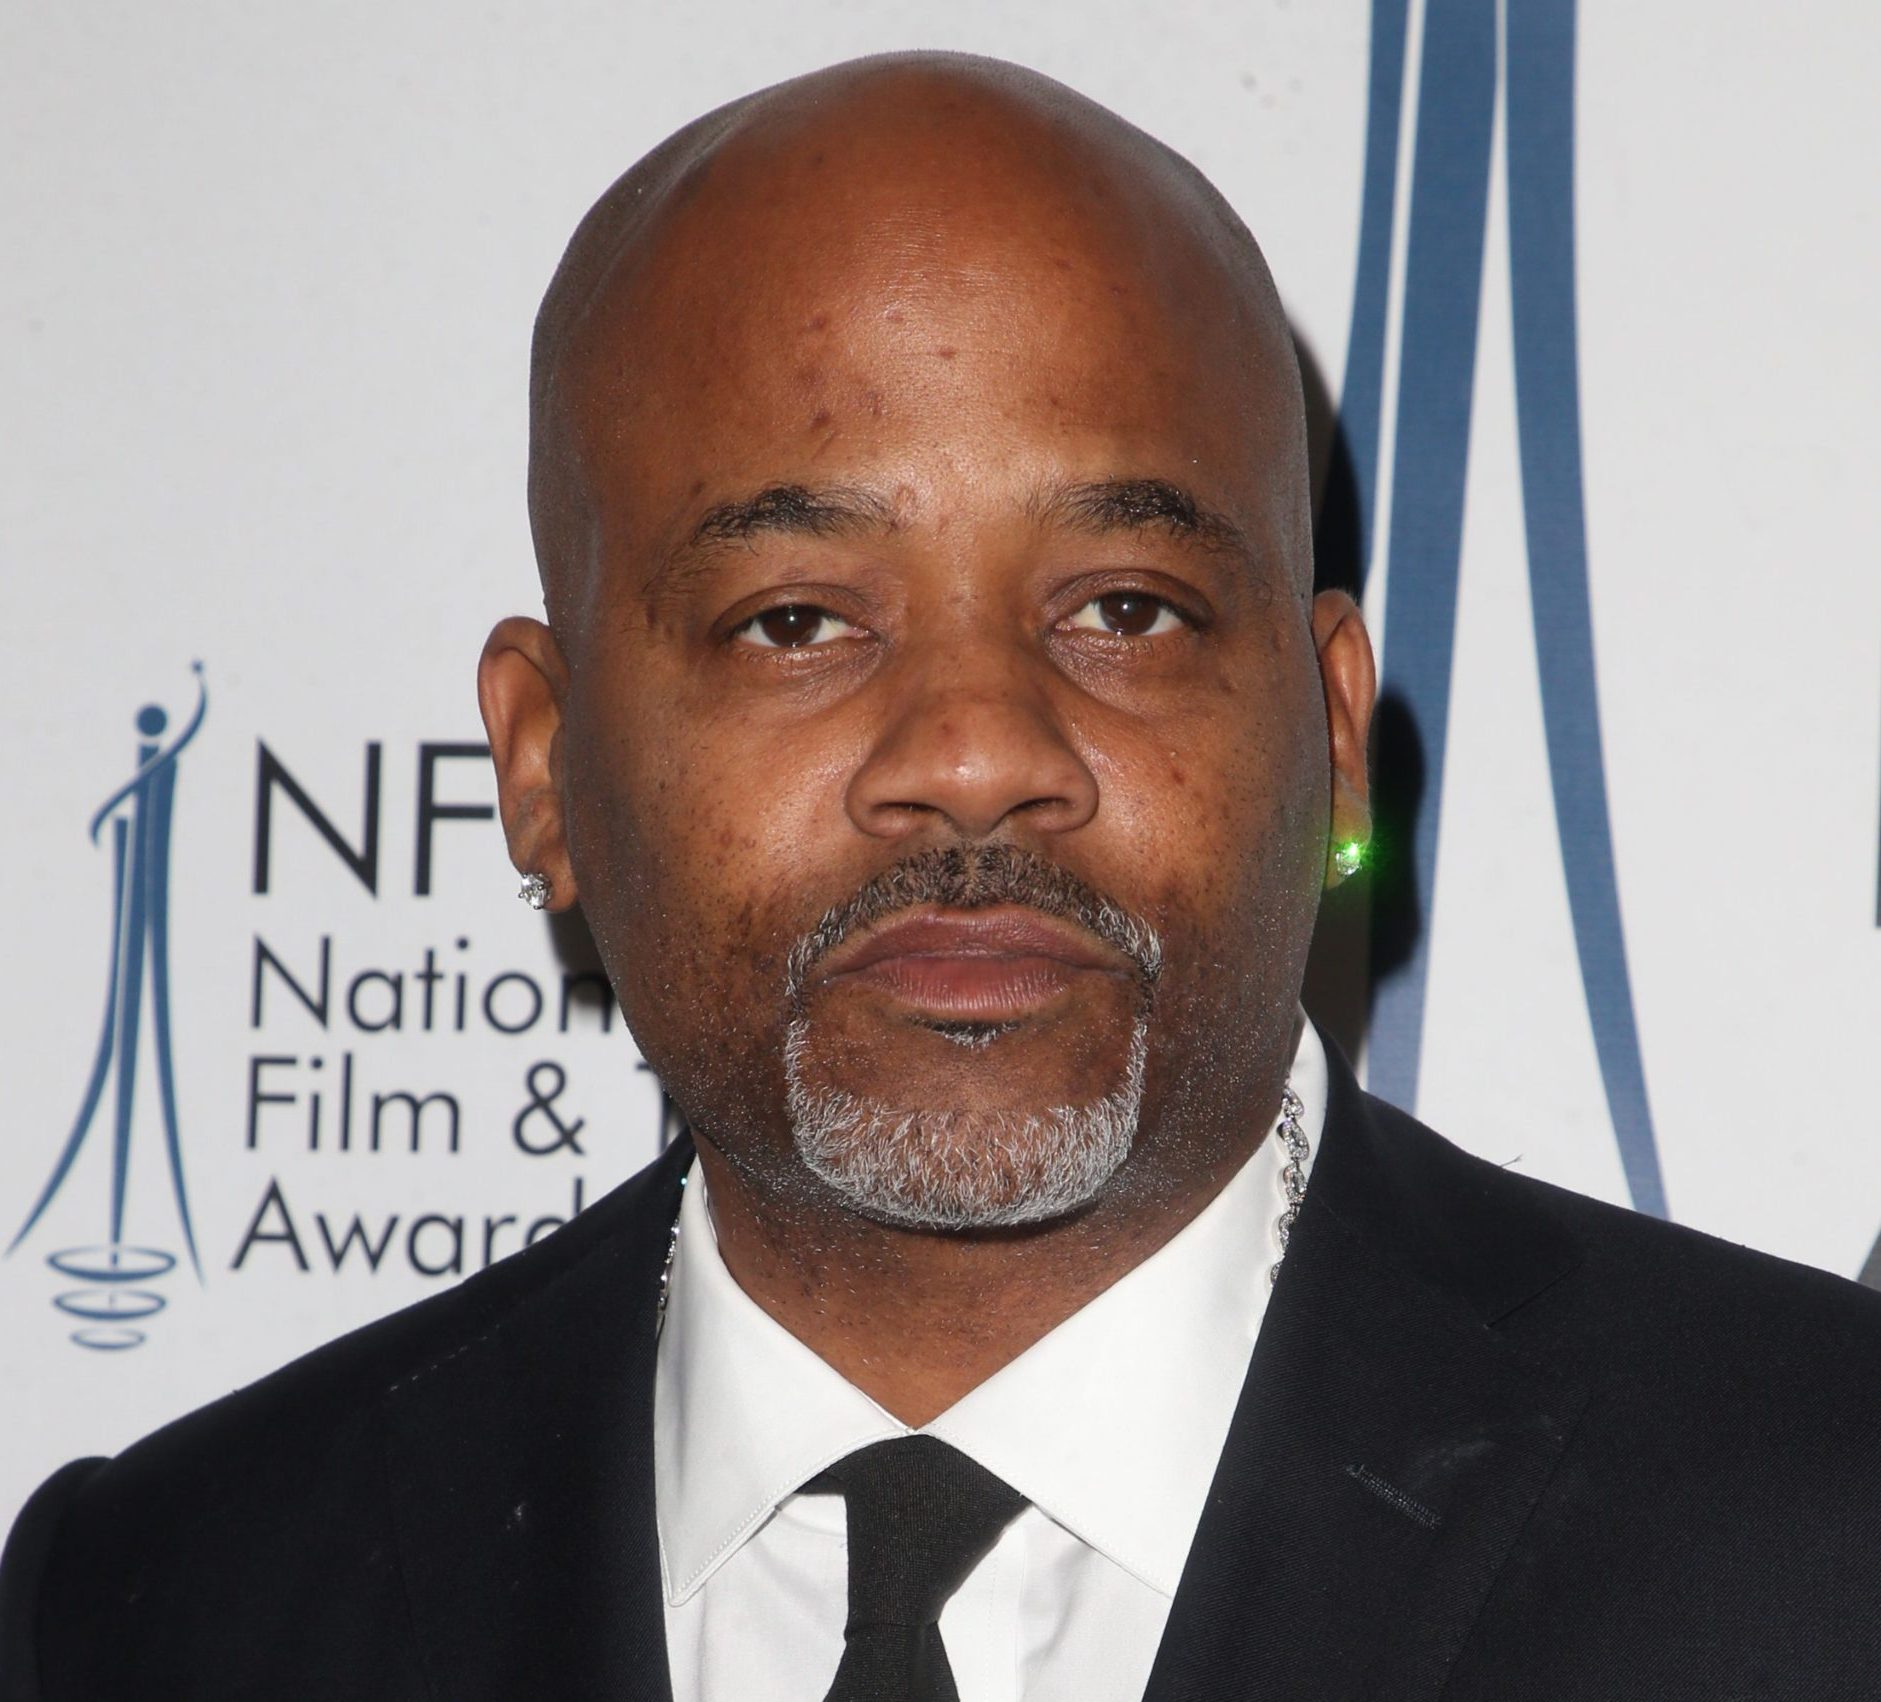 Dame Dash Explains Why He's '100%' Taking the Vaccine, How He Manages Diabetes During the Pandemic